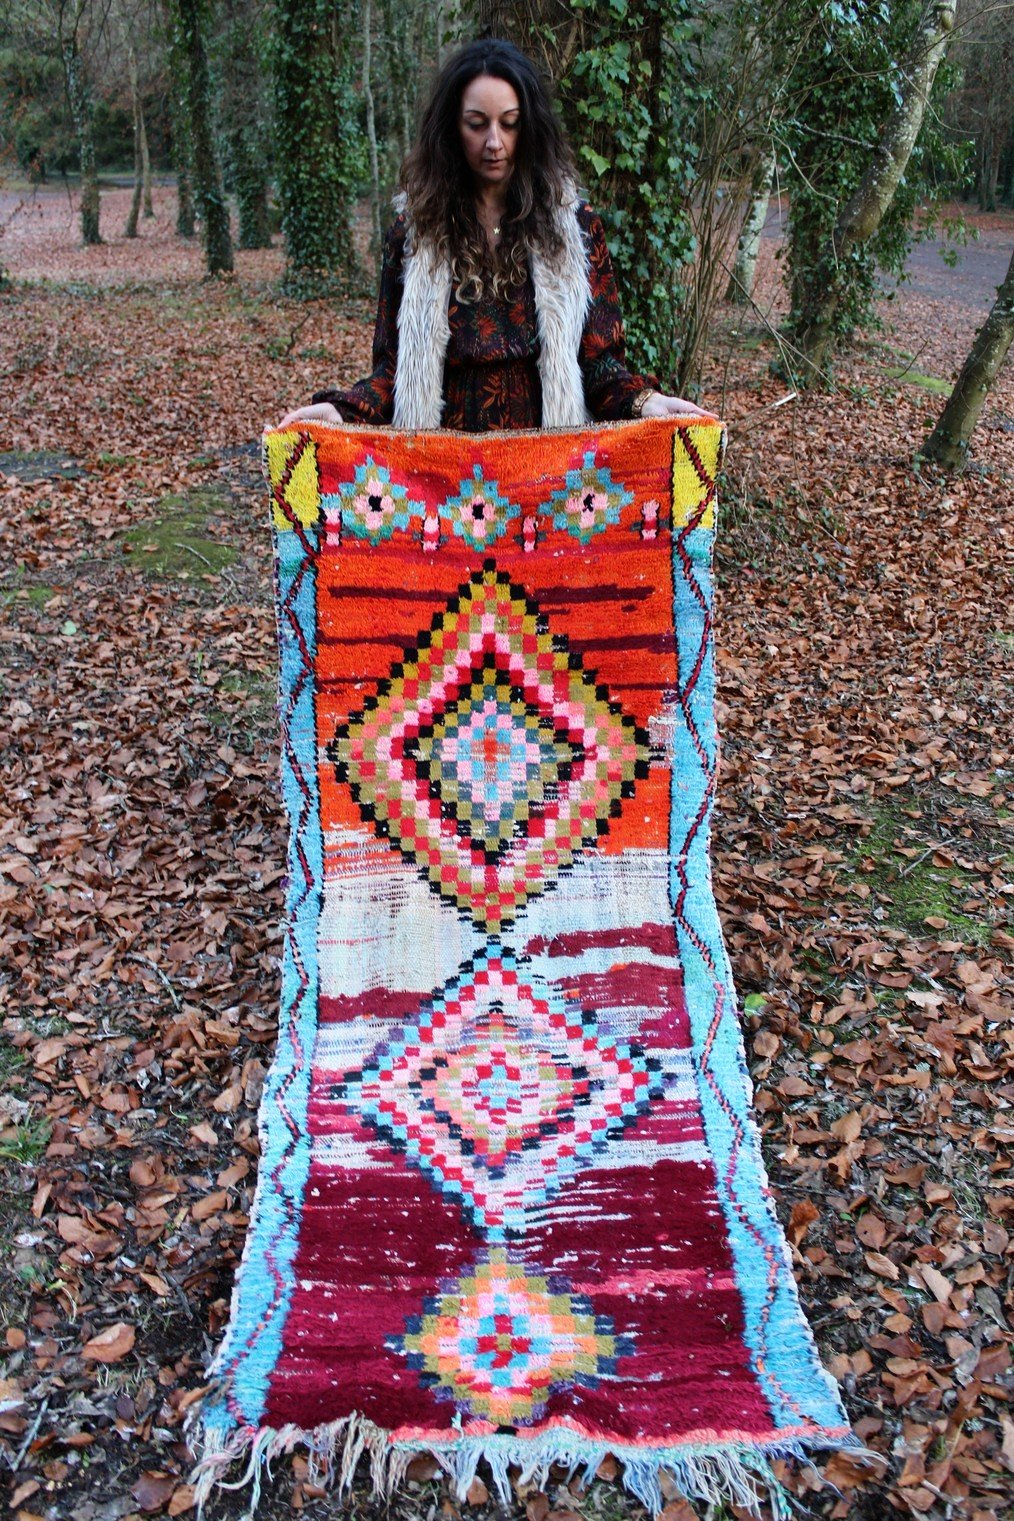 Vintage Moroccan Boucherouite Runner Rug No 1 - Bohemian Lifestyle